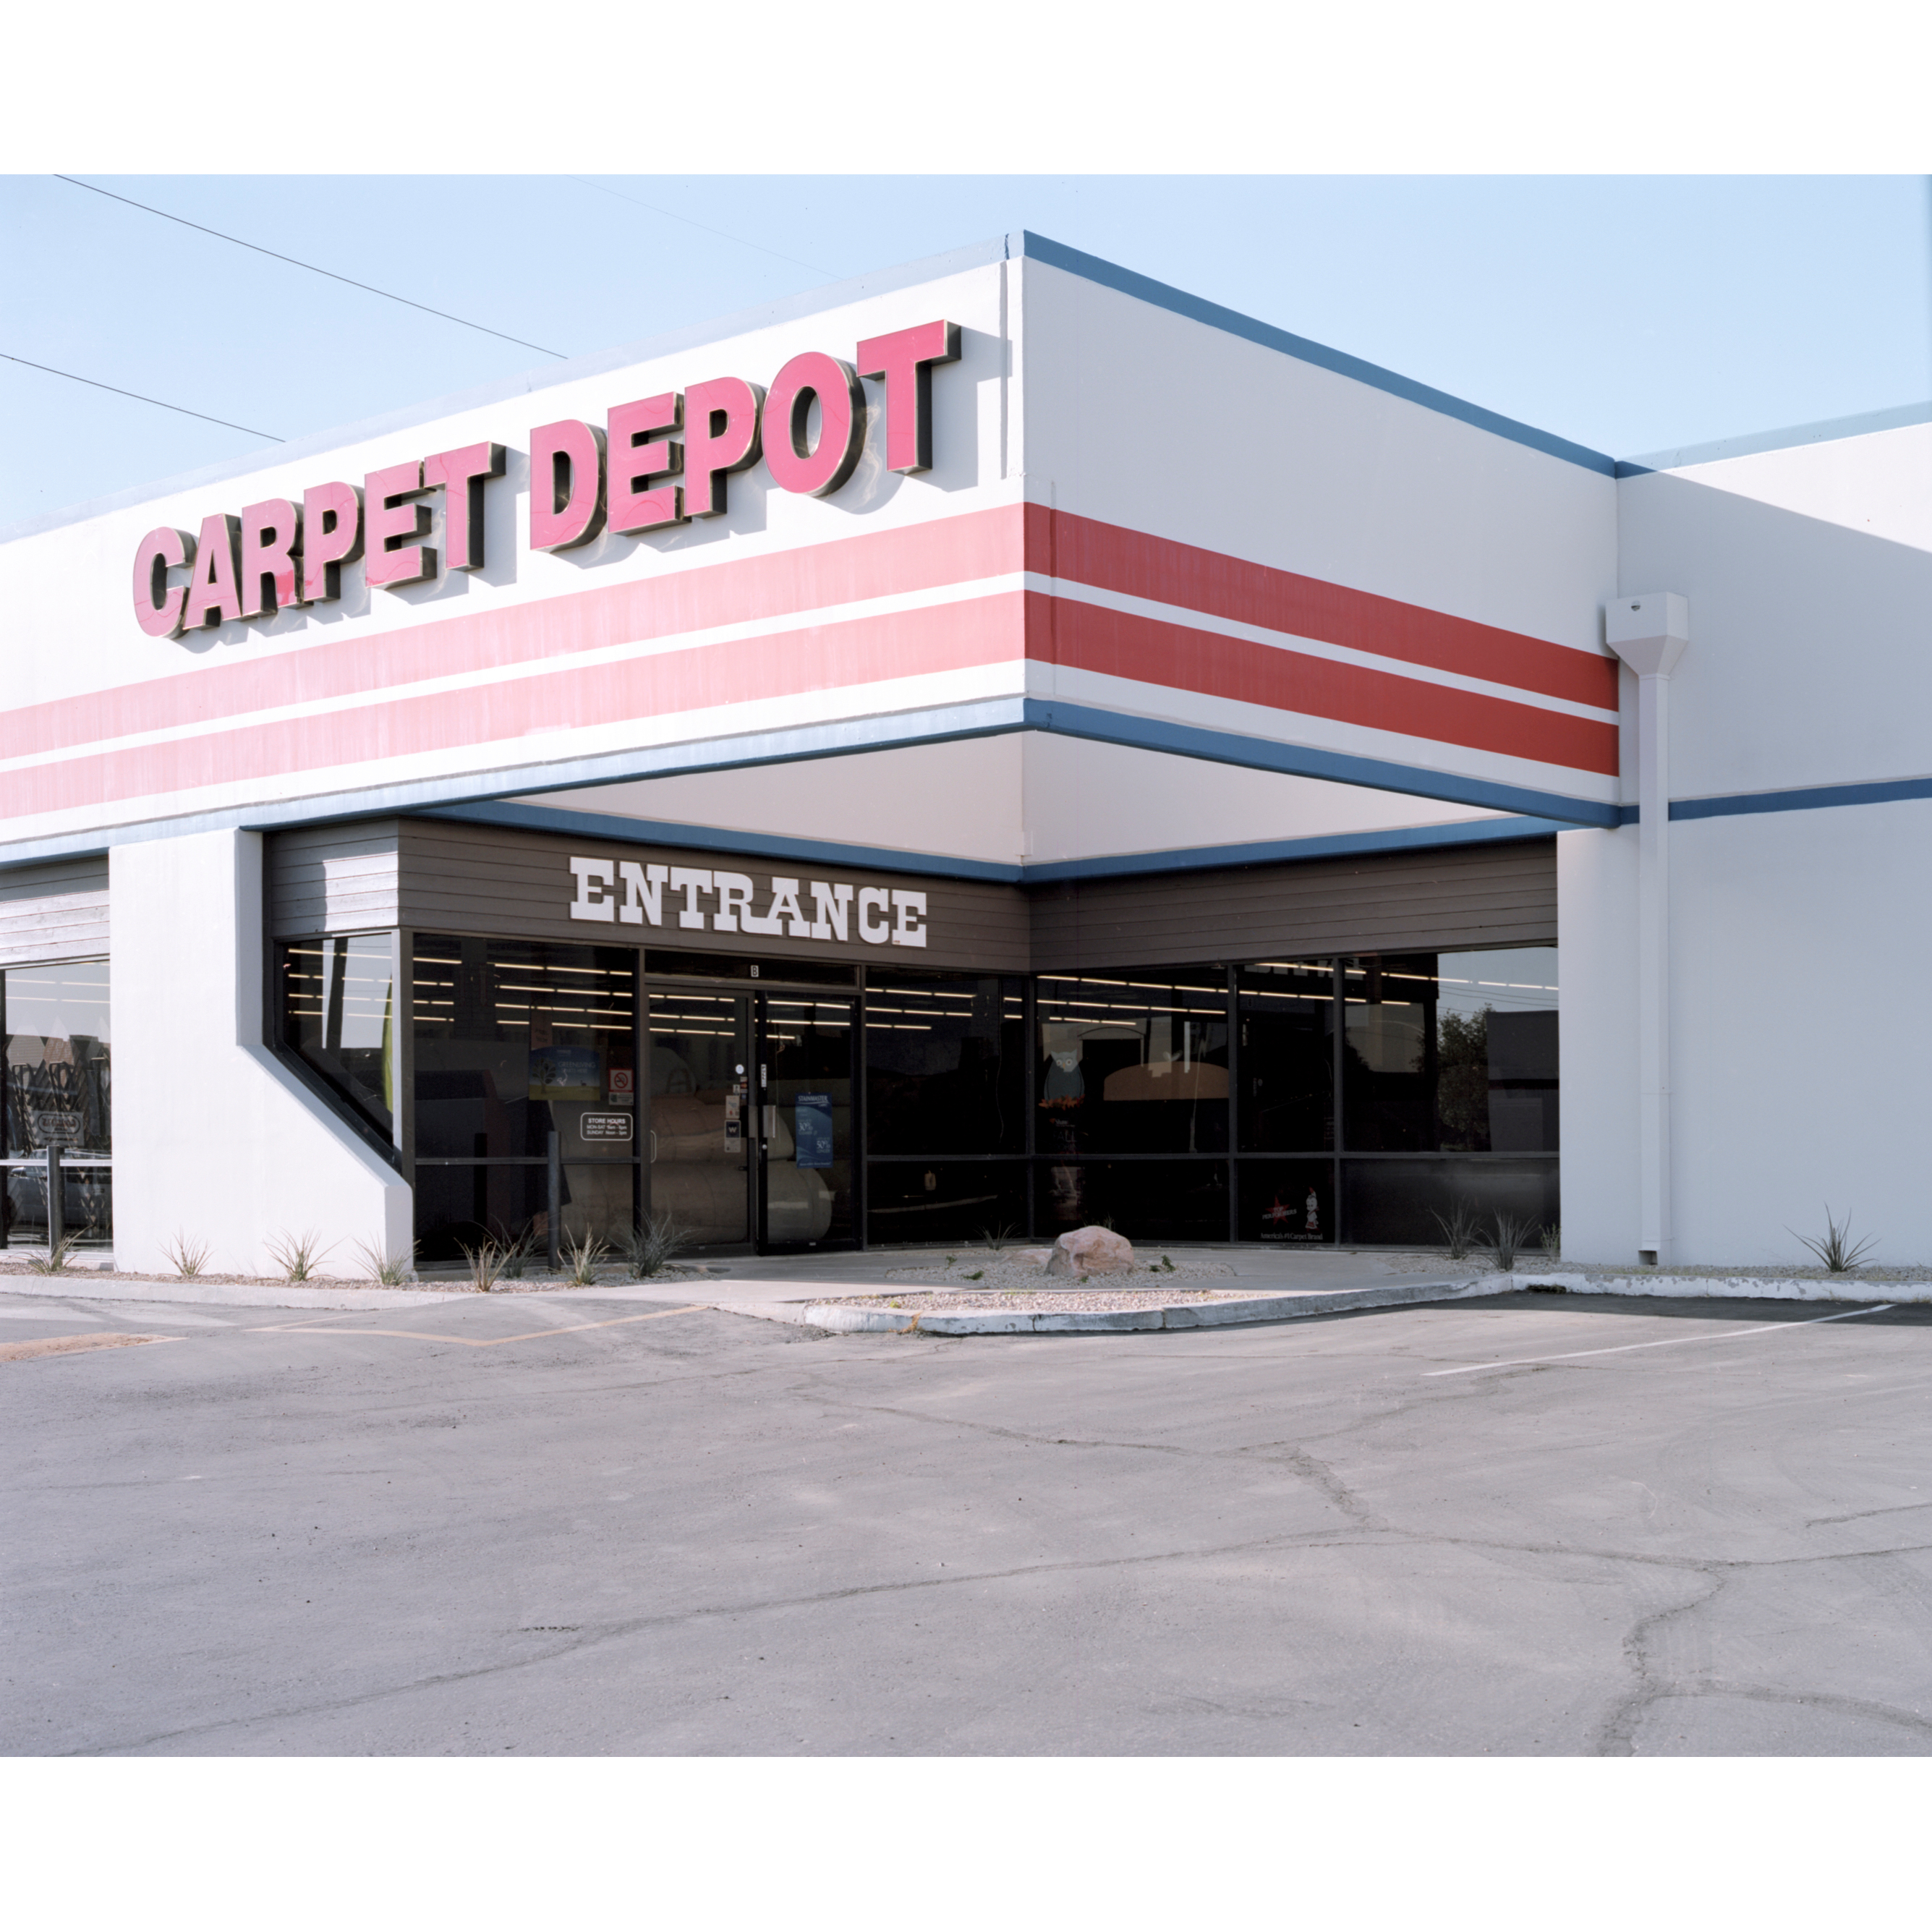 Carpet Depot - Phoenix, AZ - Carpet & Floor Coverings